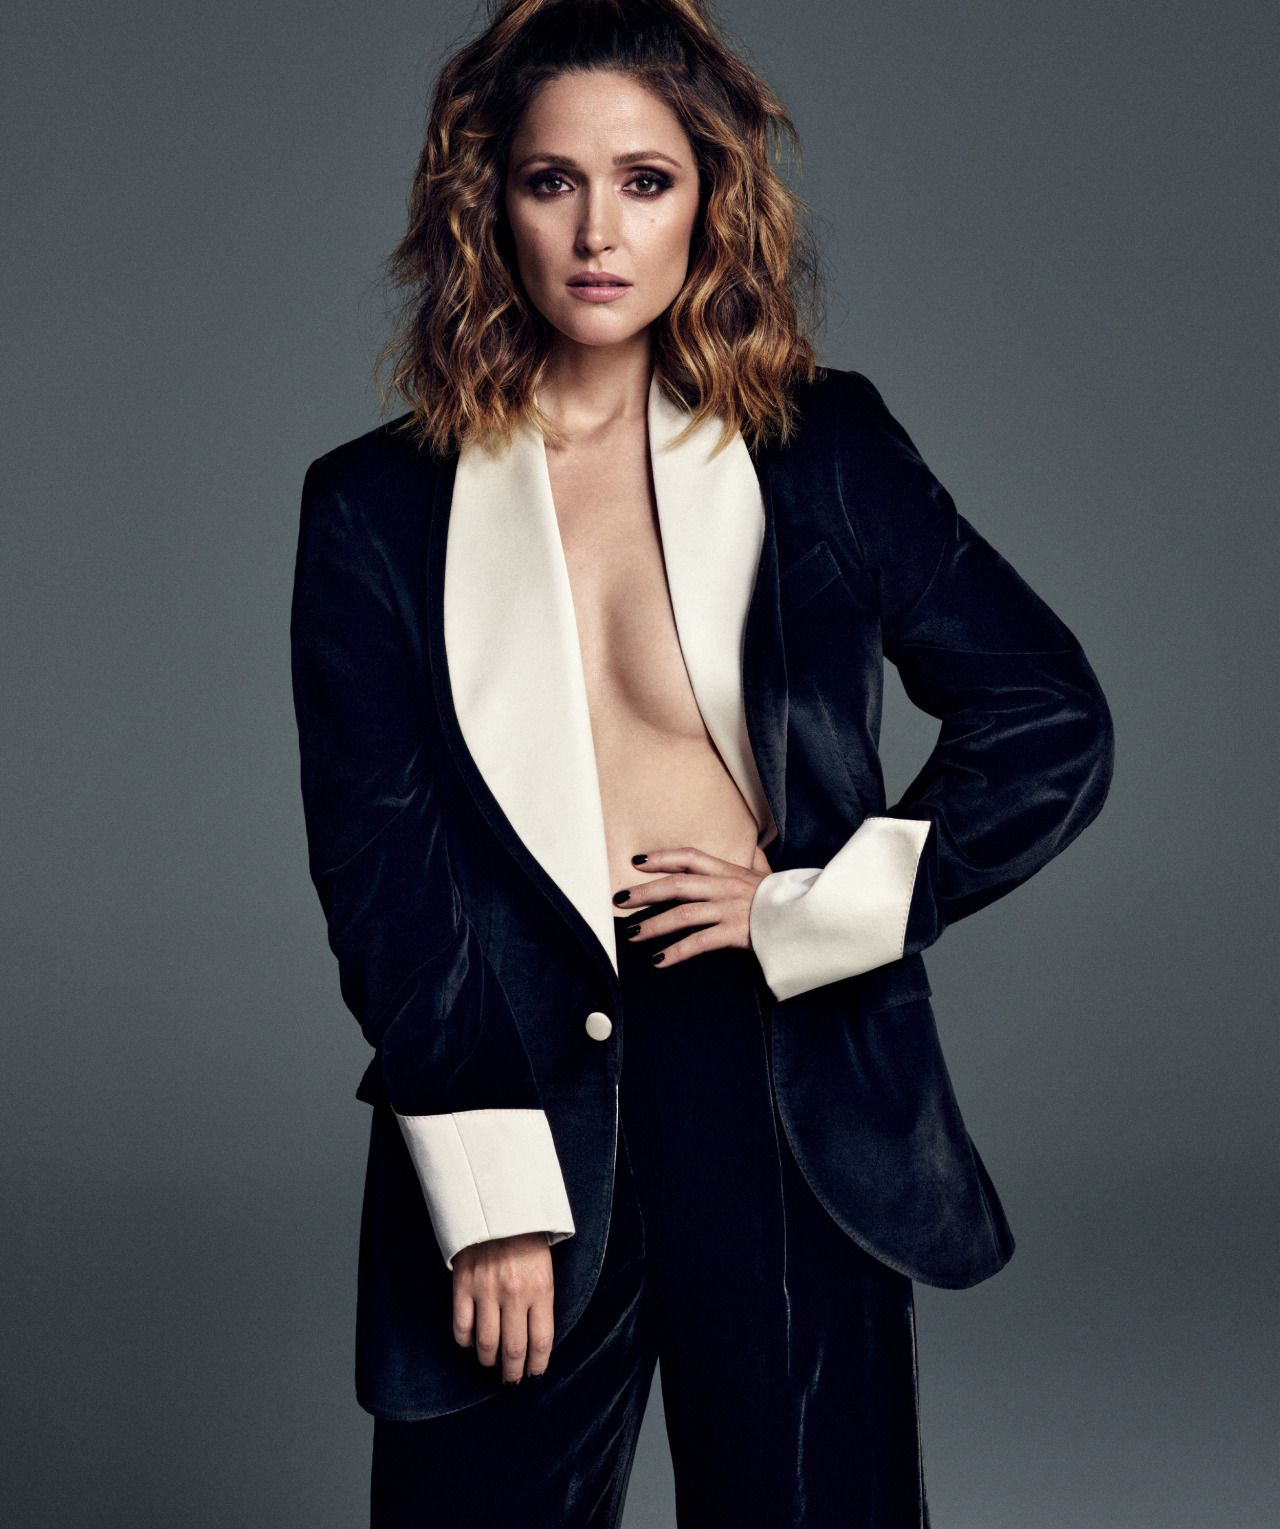 Home Desing Rose Byrne Photo 485 Of 550 Pics Wallpaper Photo